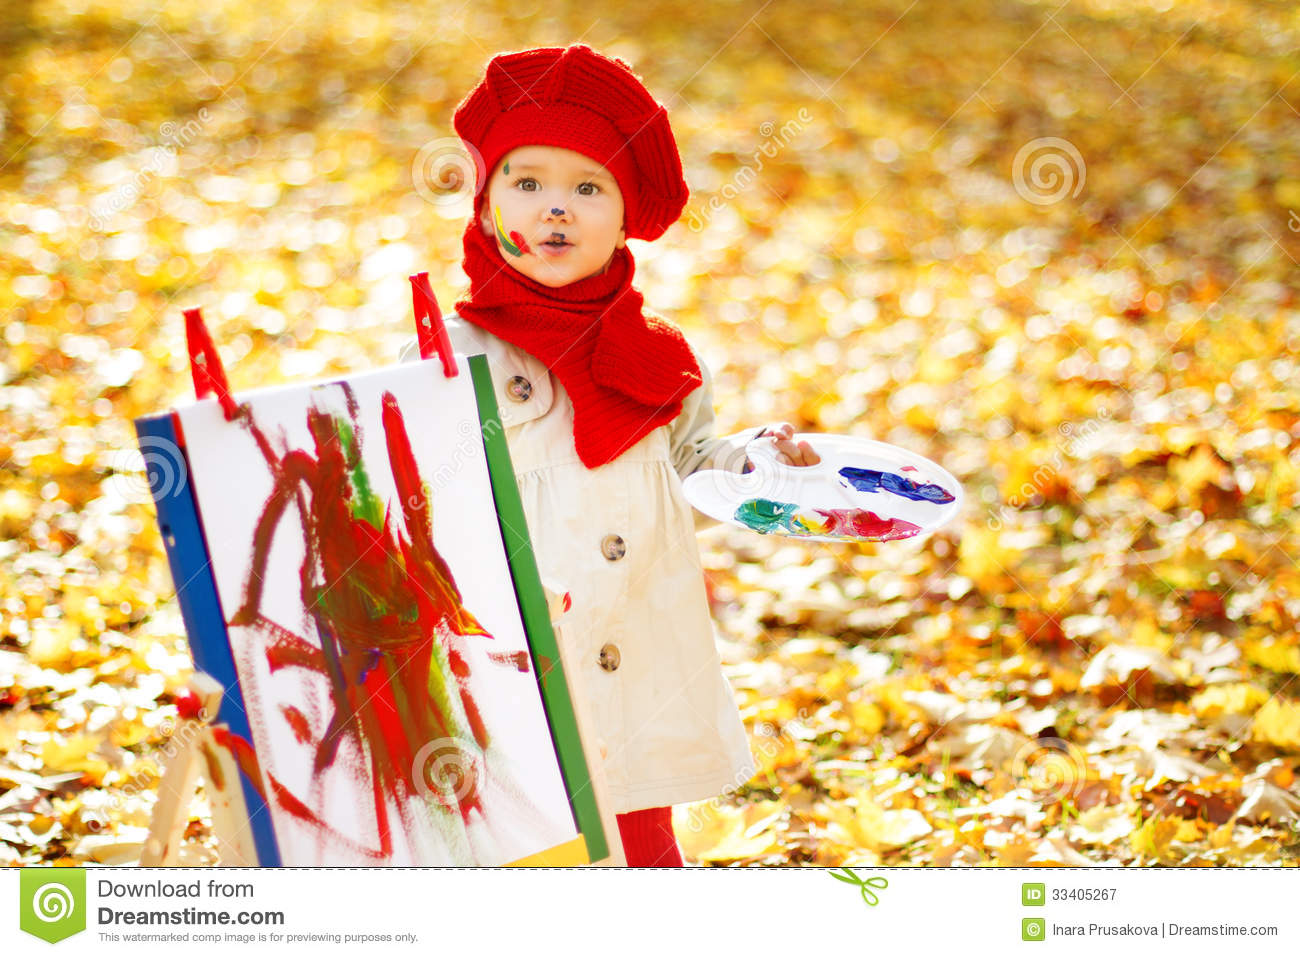 ... : Child drawing on easel in Autumn Park. Creative kids development